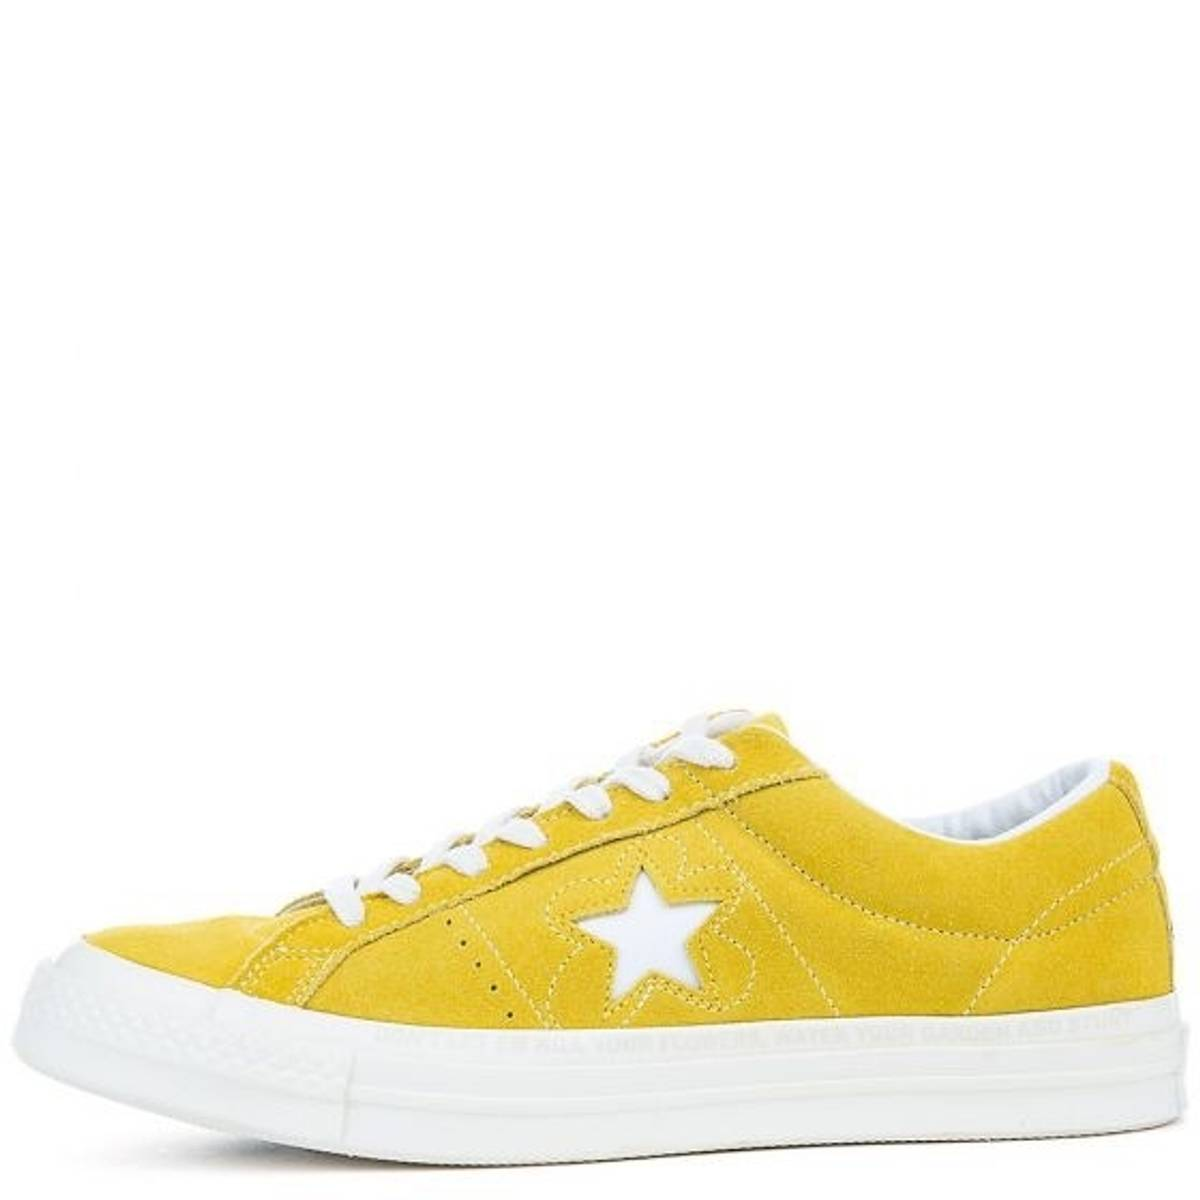 1b9da6f52deb9a Converse Converse One Star OX Tyler The Creator Golf Wang Sulphur 159435C  2017 Size 9.5 - Low-Top Sneakers for Sale - Grailed